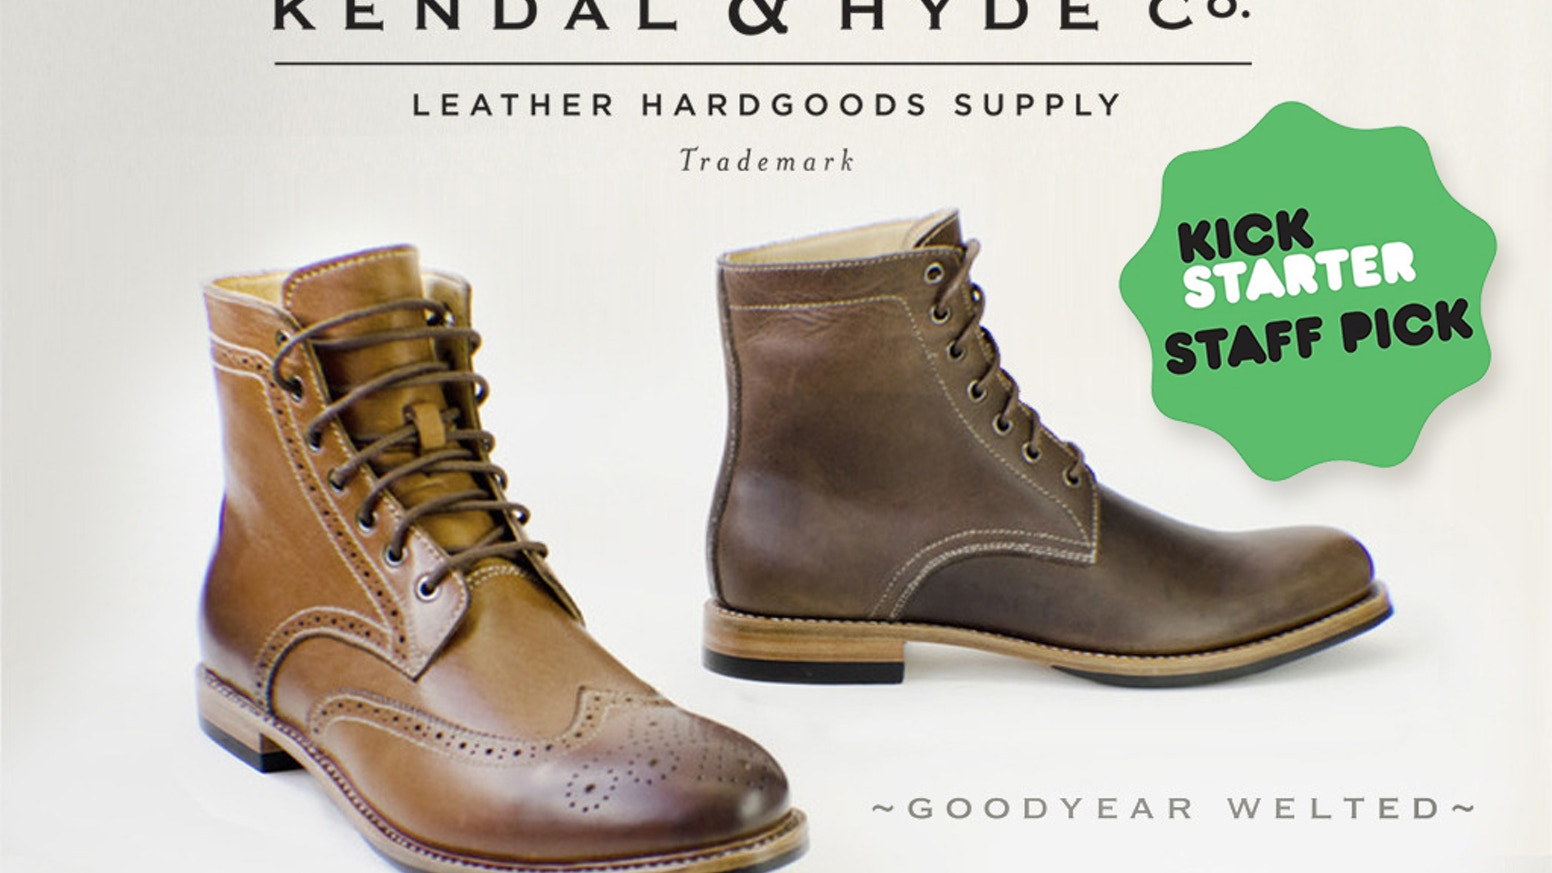 26947b340c4a Kendal & Hyde Co. leather goodyear-welted boots (and bags) by KENDAL ...